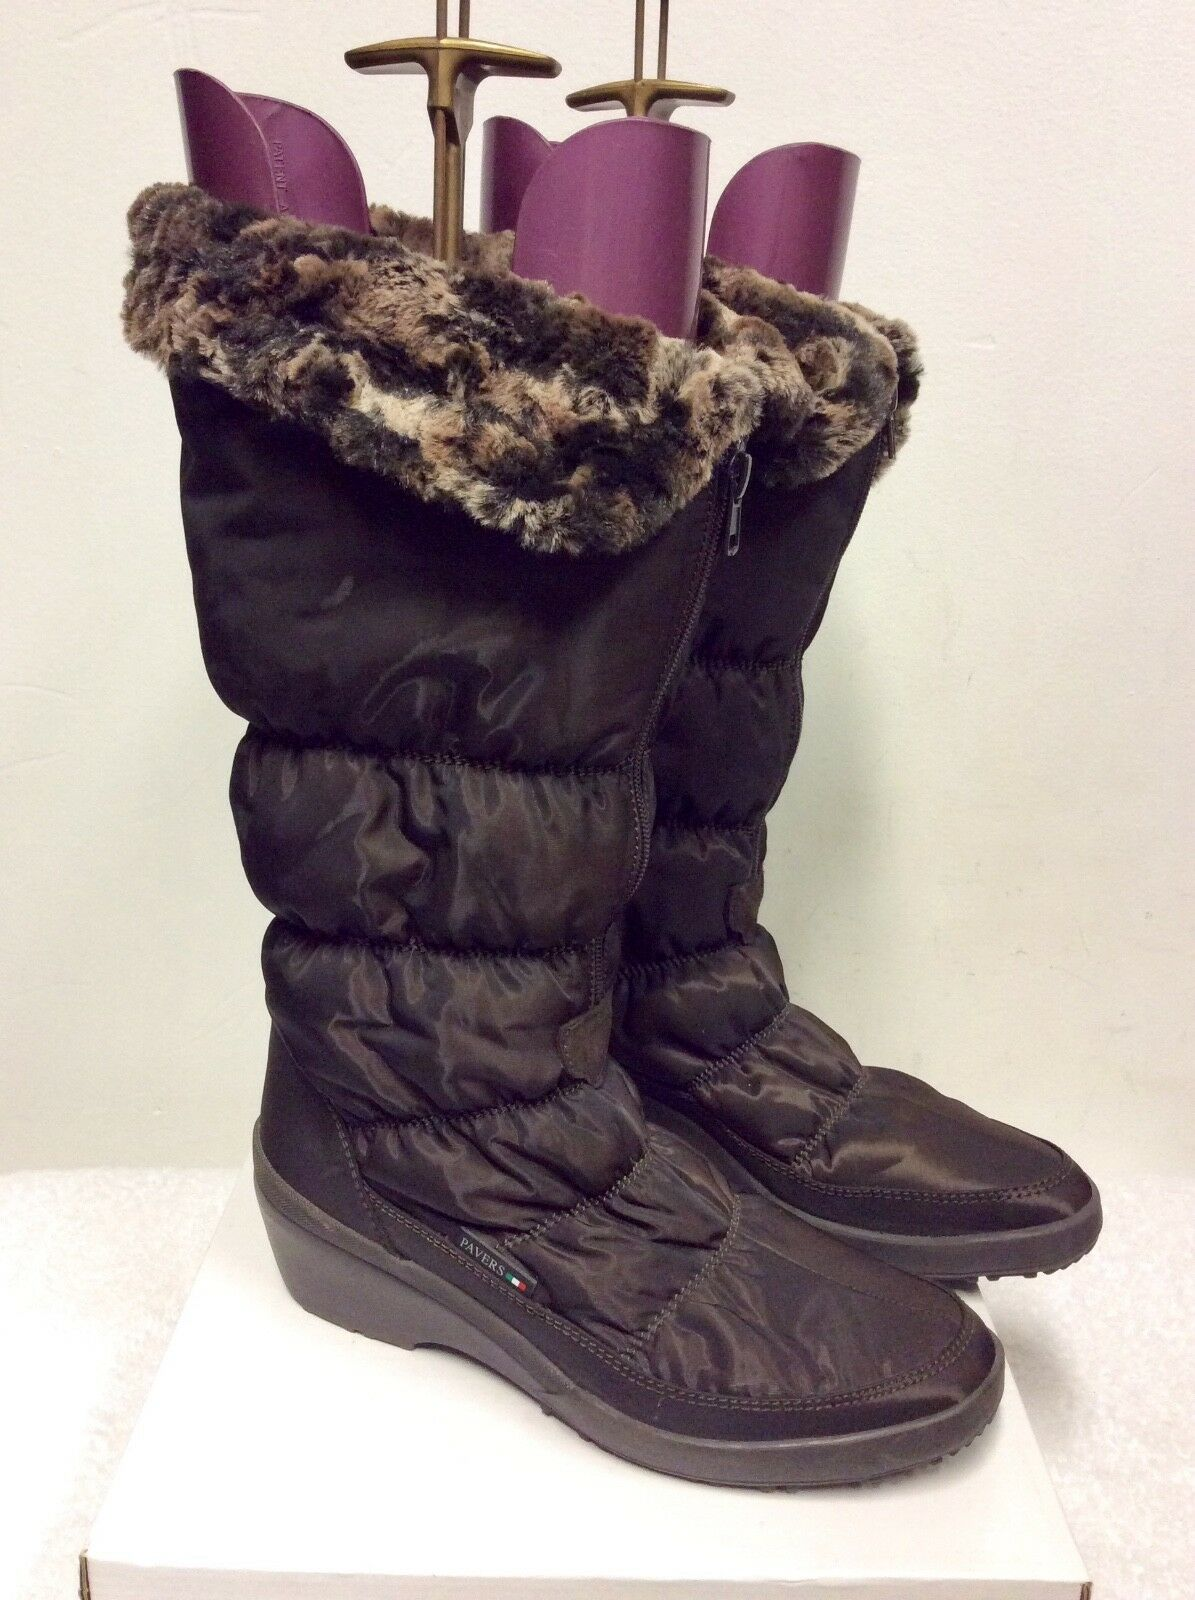 PAVERS BROWN FAUX FUR LINED ZIP UP SNOW BOOTS SIZE 6/39